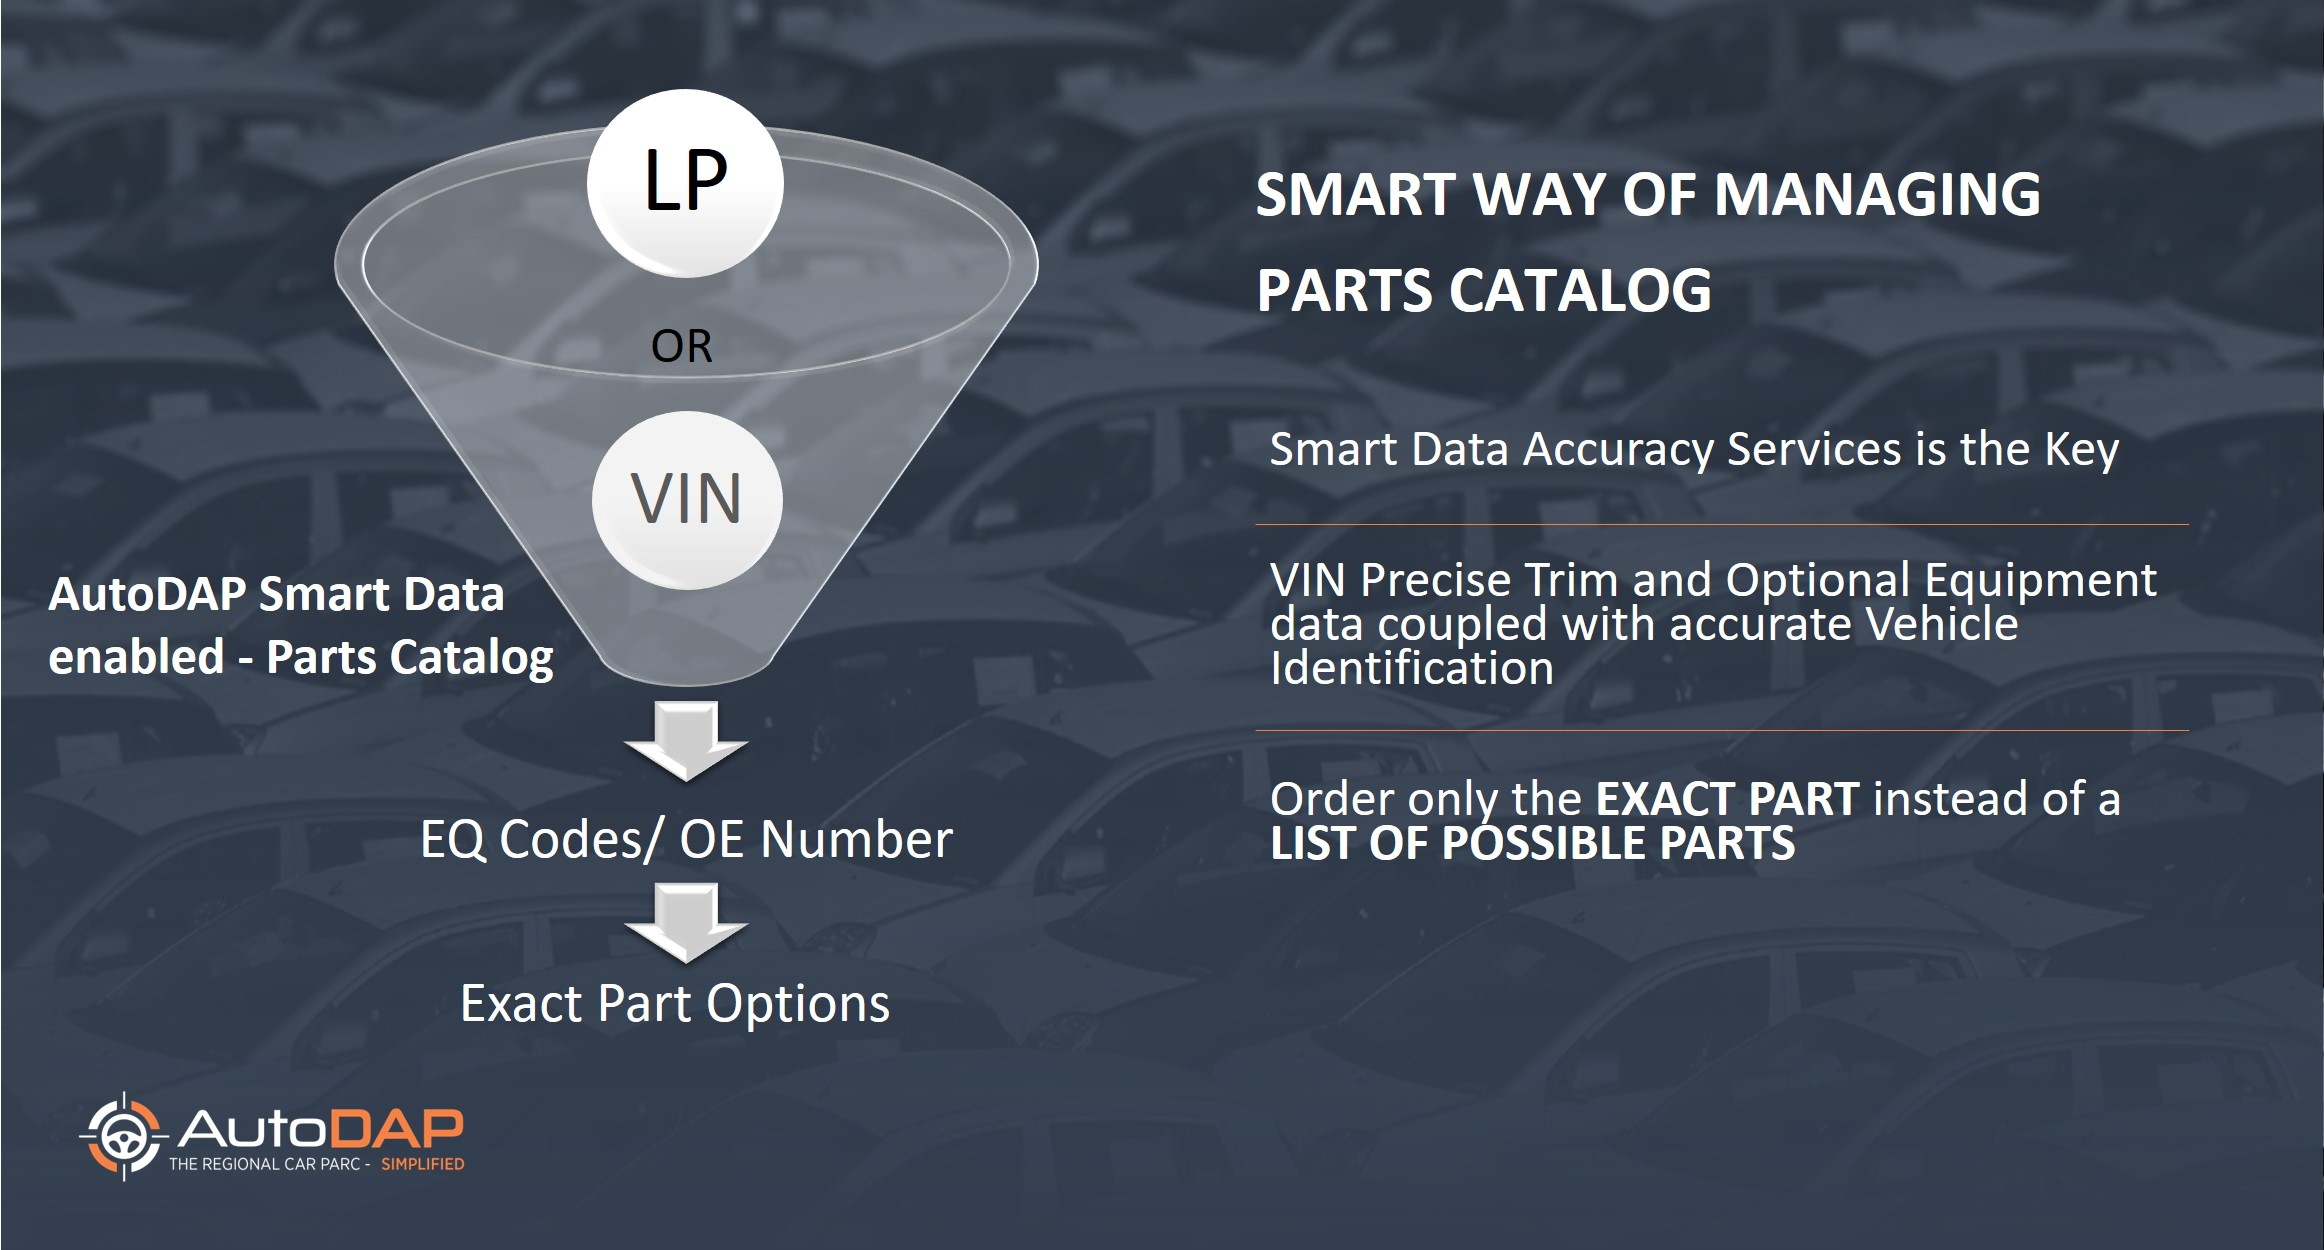 AutoDAP Smart Data enabled - Parts Catalog